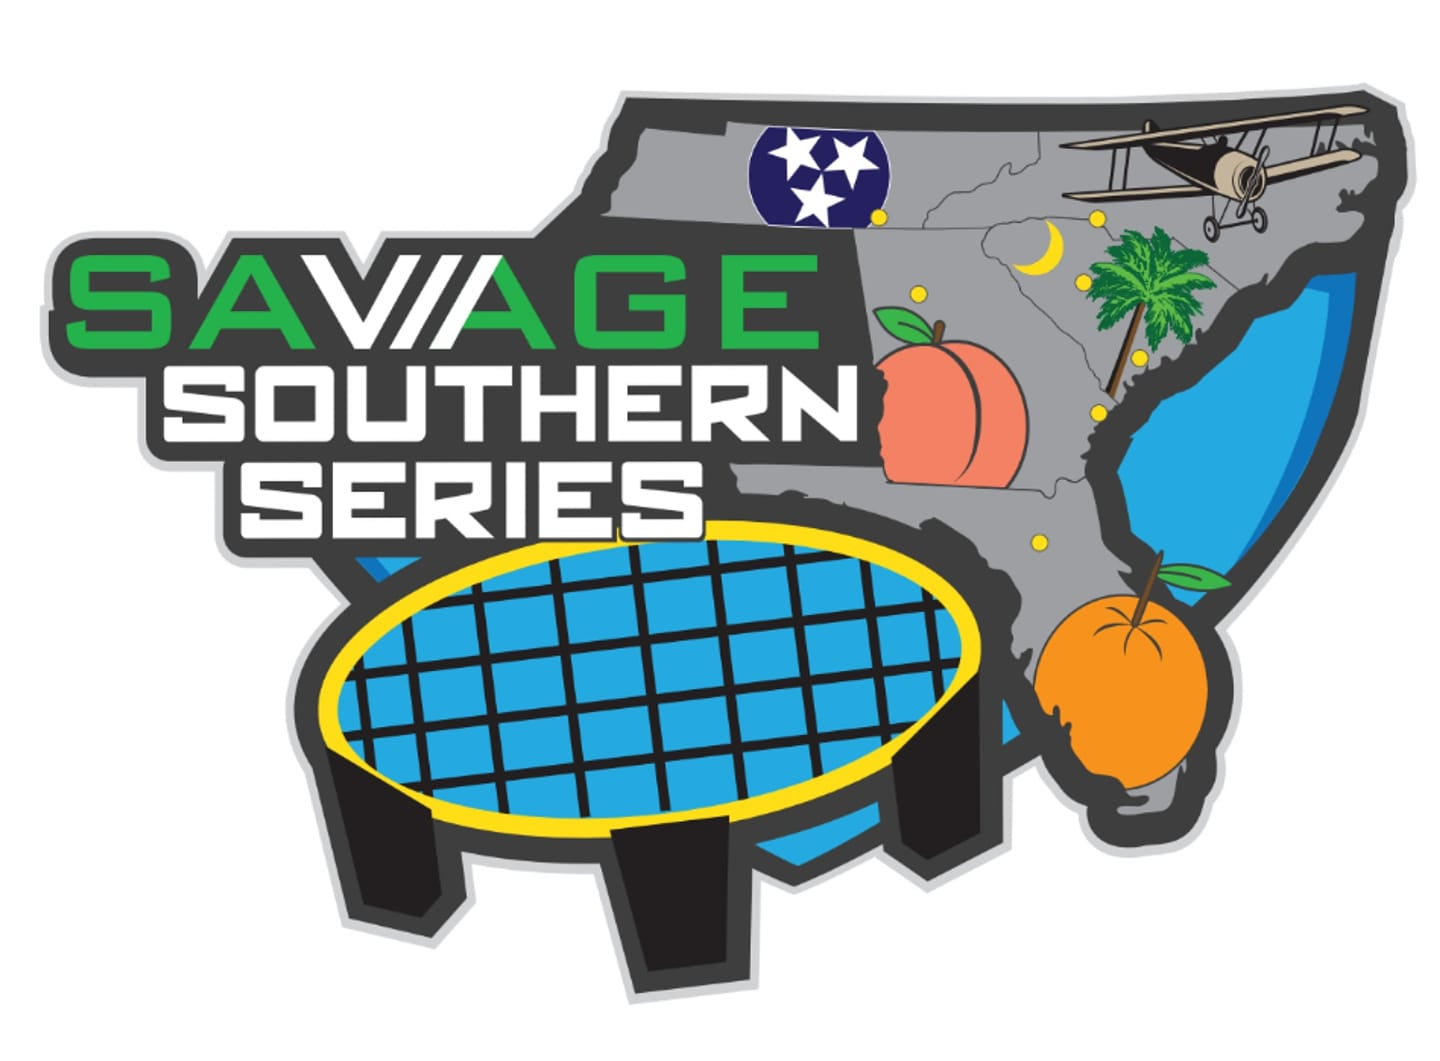 Southern Series 2019 - Gainsville, FL; Savannah, GA; Columbia, SC; Chattanooga, TN; Charlotte, NC; Charleston, SC; Atlanta, GA.The 2019 Southern Series takes us all across the Southeast. Rankings and points, as well as prizes, are up for grabs. Don't miss out!